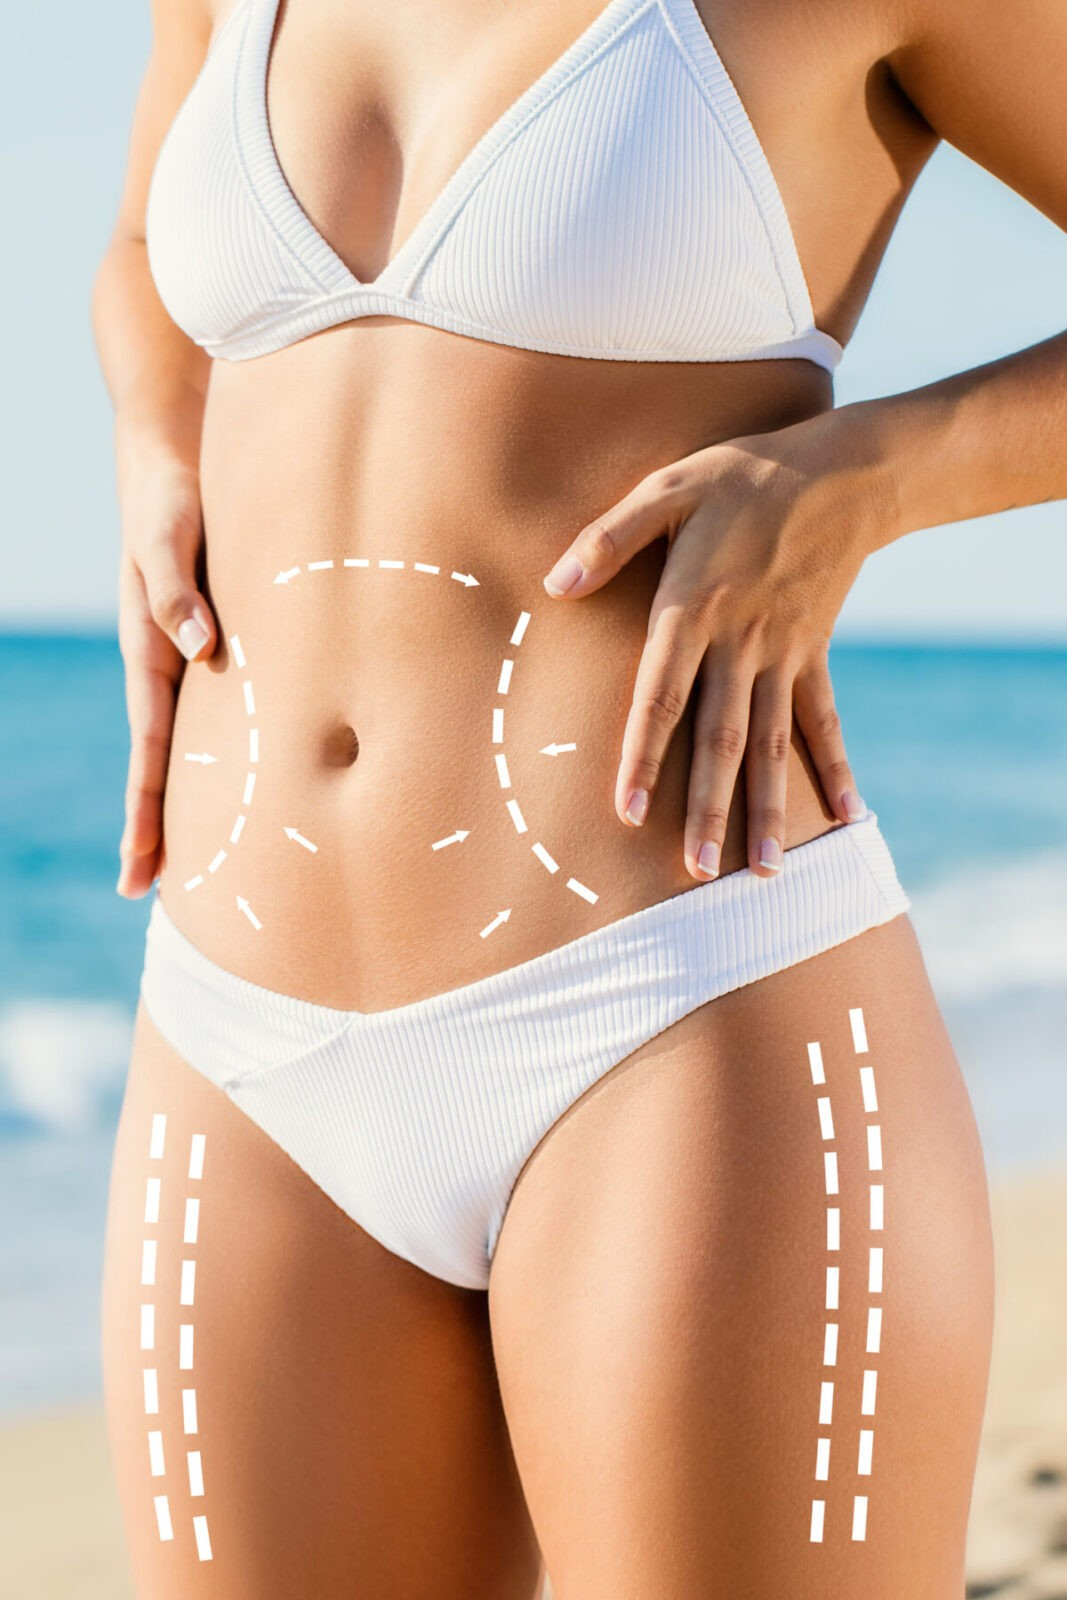 Body Sculpting BBL at Skin Works Medical Spa